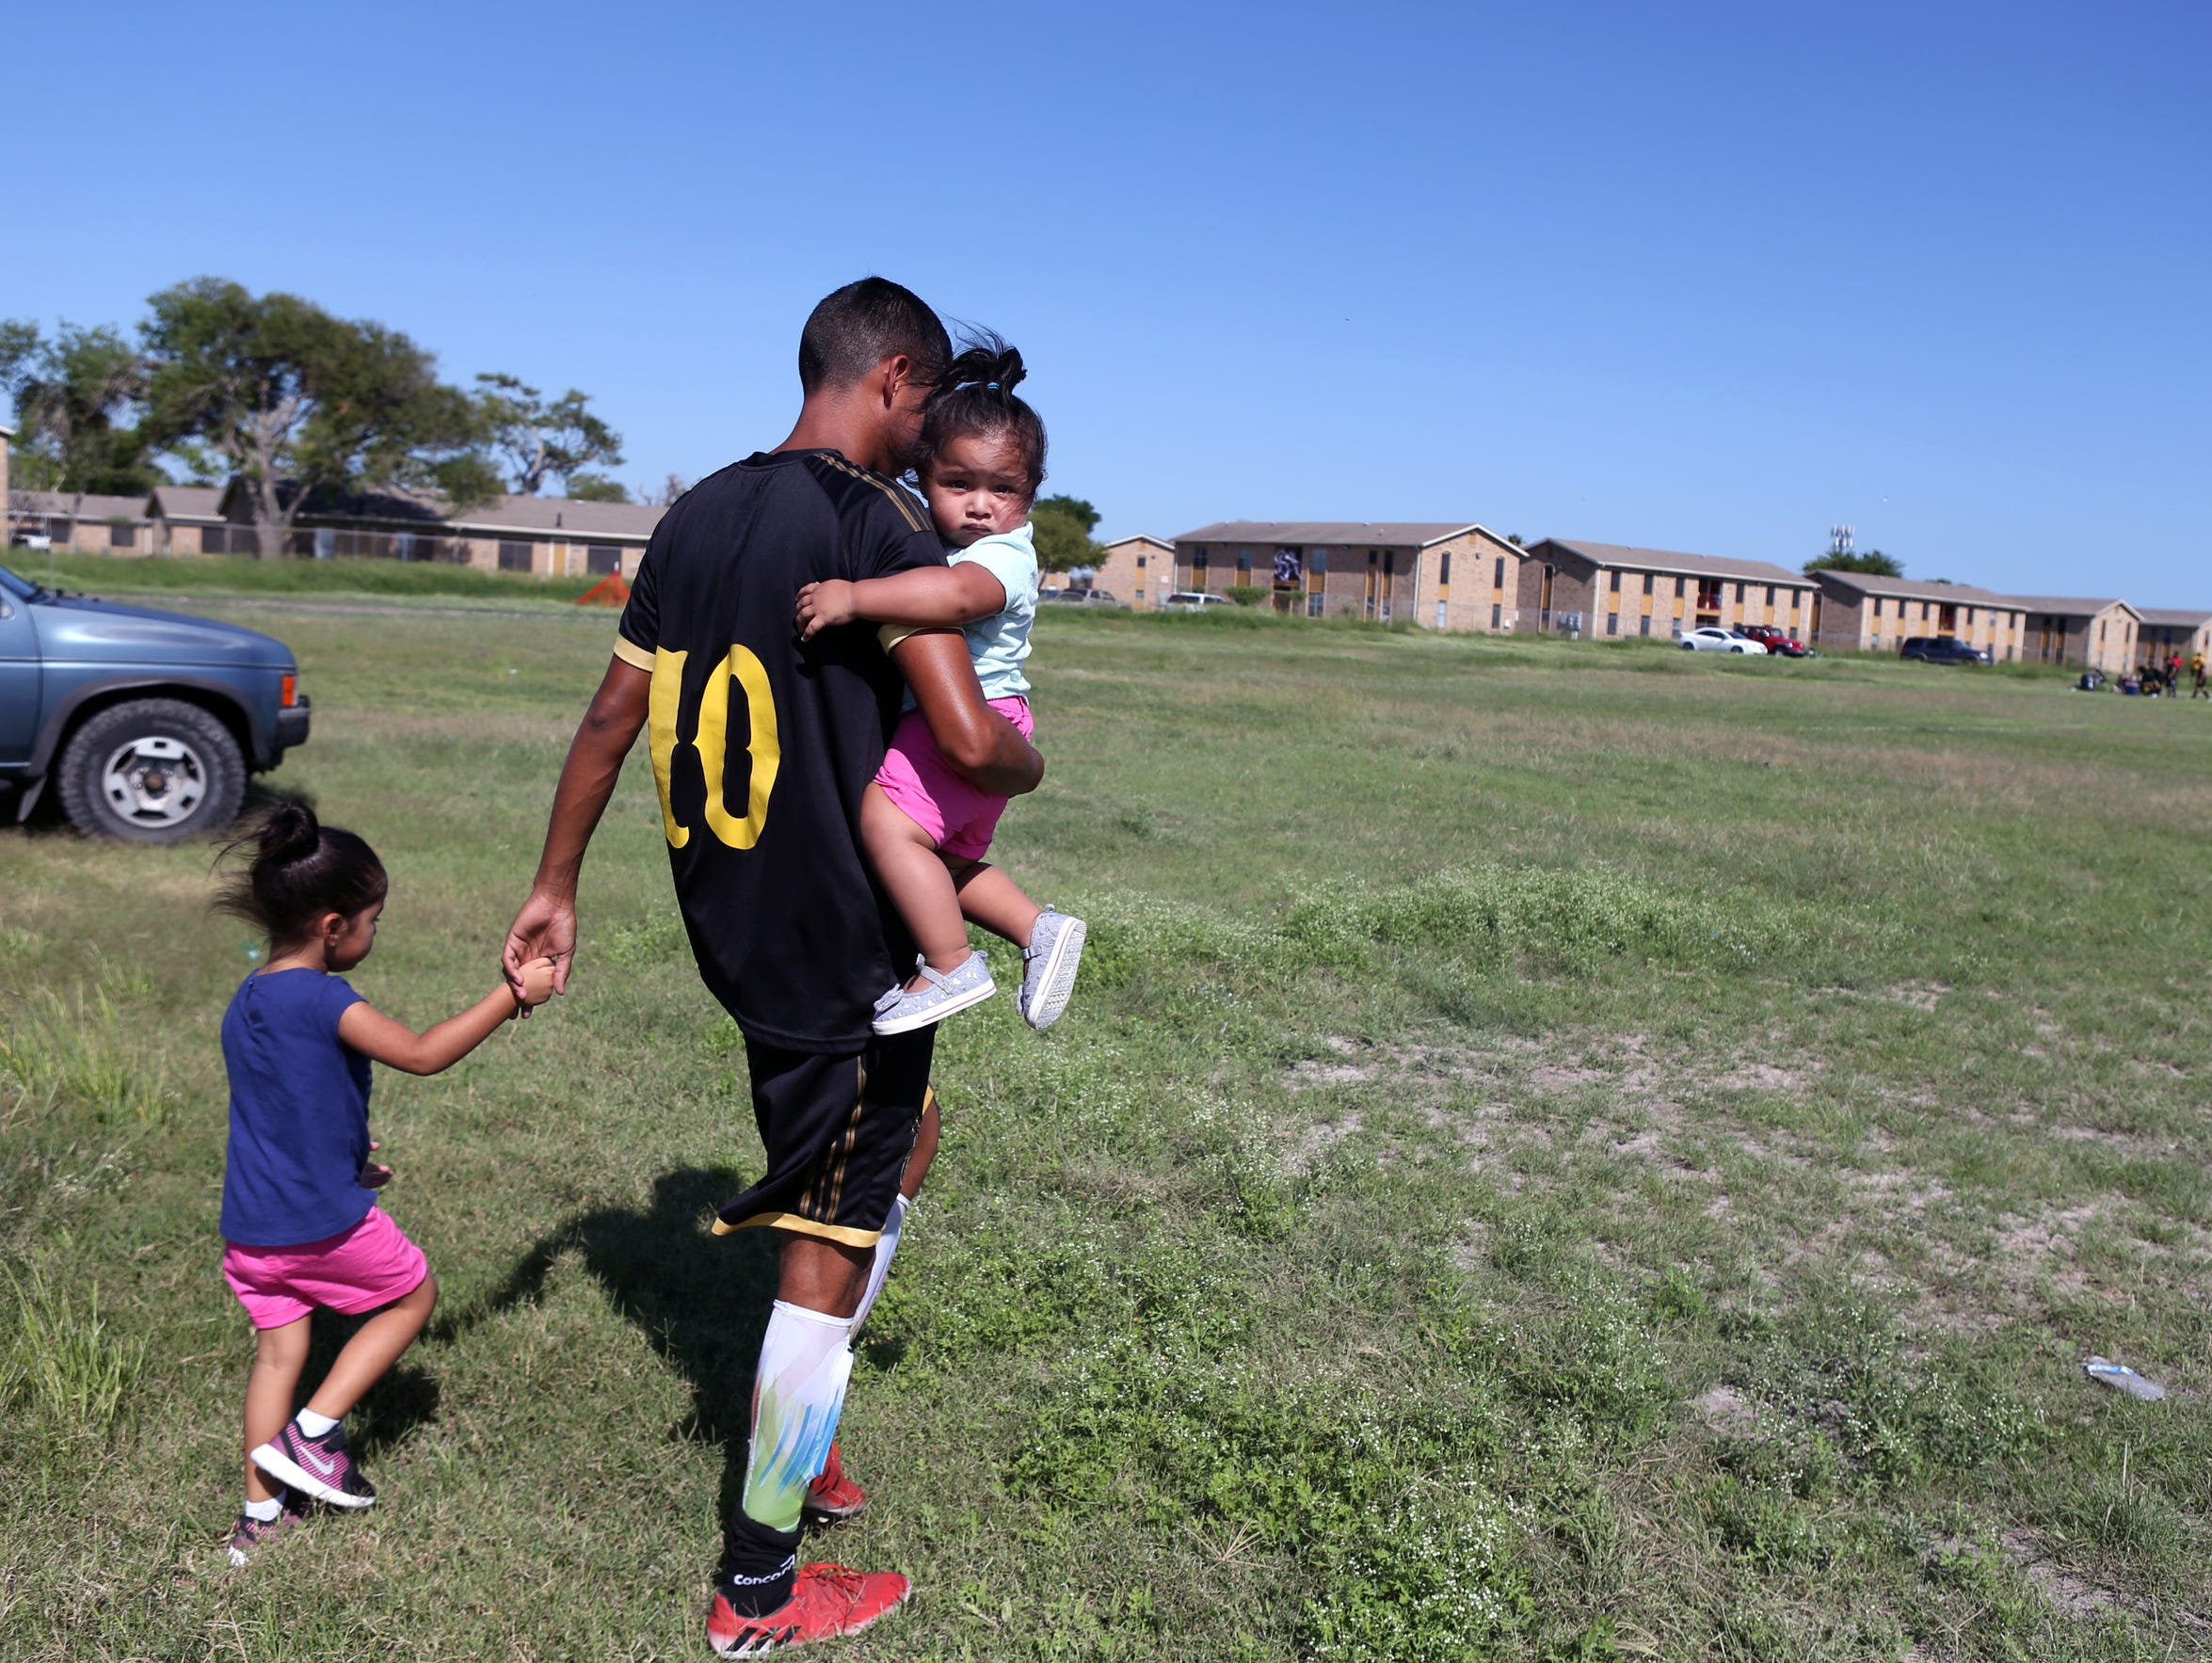 Former DACA recipient Ezequiel Rojas Martinez and his girls, Evalynn Rojas (left), 4 (Dec 5), and Nayeli Rojas, 1 1/2, head to the soccer field on Oct. 8, 2017. He's seeking legal permanent residency in the U.S.